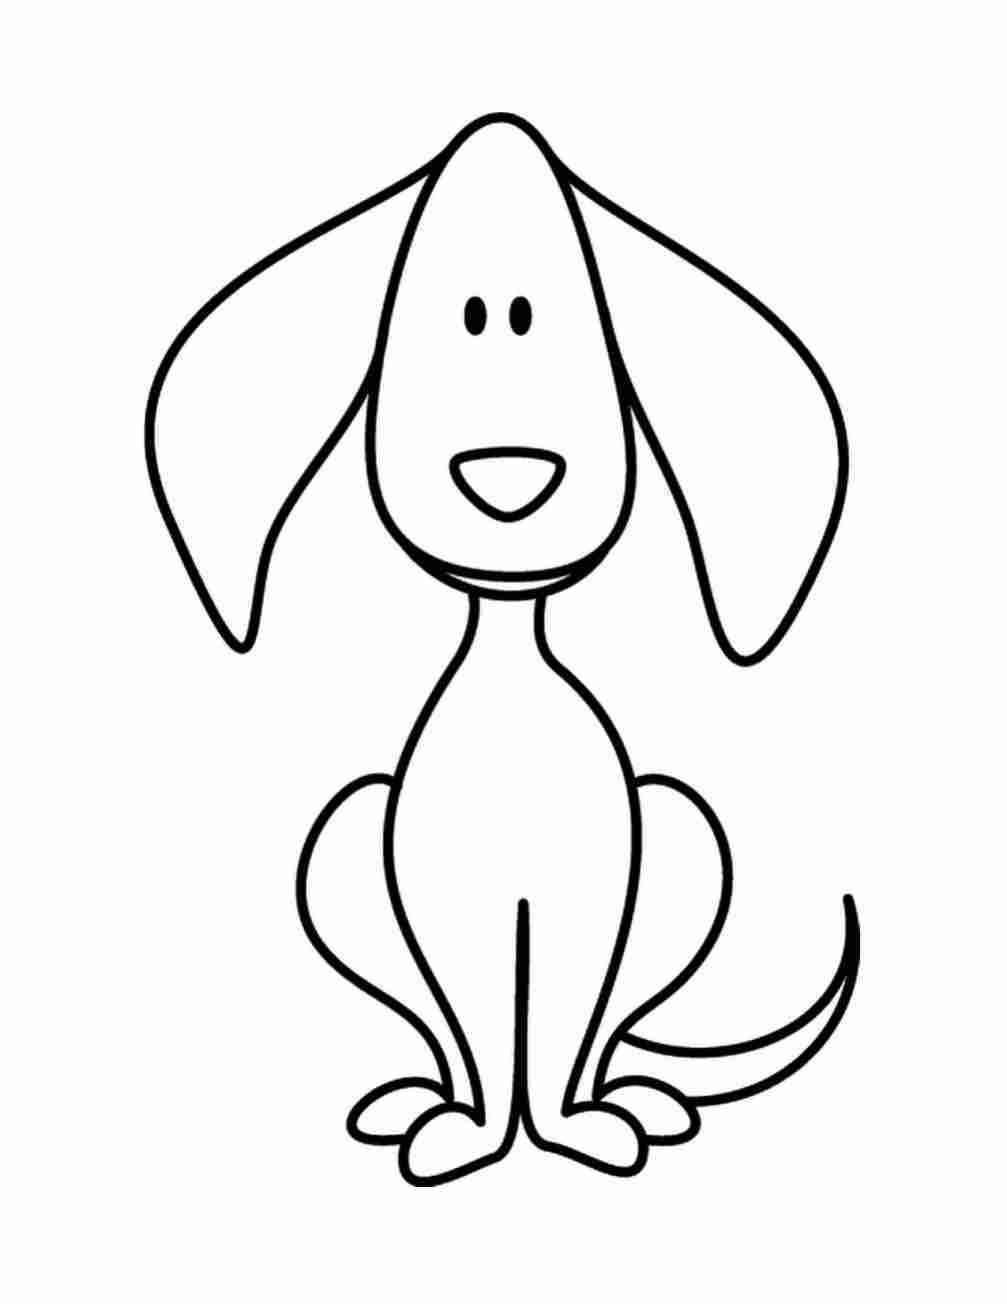 Simple dog drawing for kids free download best simple dog drawing